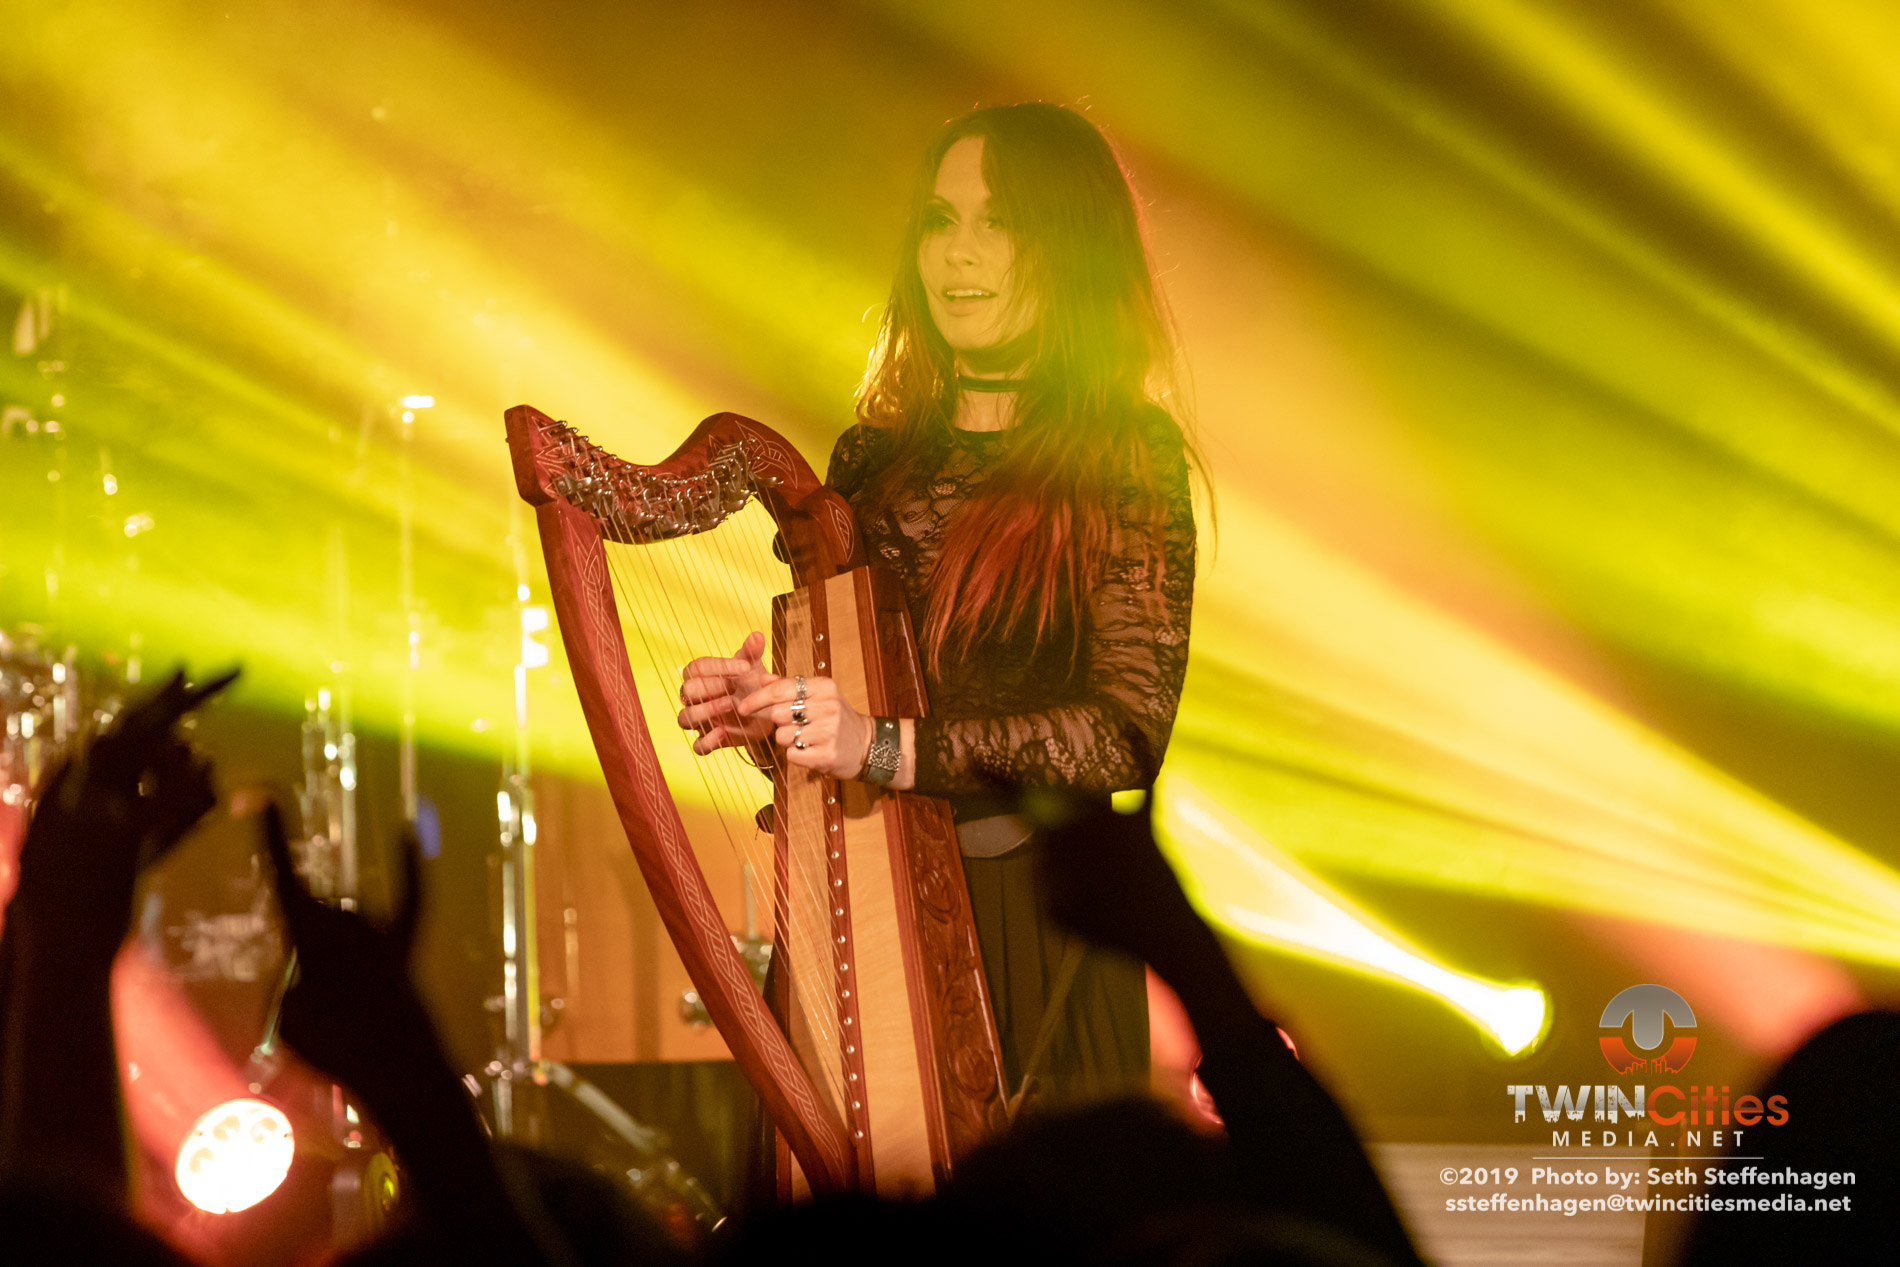 October 5, 2019 - Minneapolis, Minnesota, United States -  Eluveitie live in concert at The Cabooze co-headlining with Korpiklaani and with Gone In April as the openers.  (Photo by Seth Steffenhagen/Steffenhagen Photography)